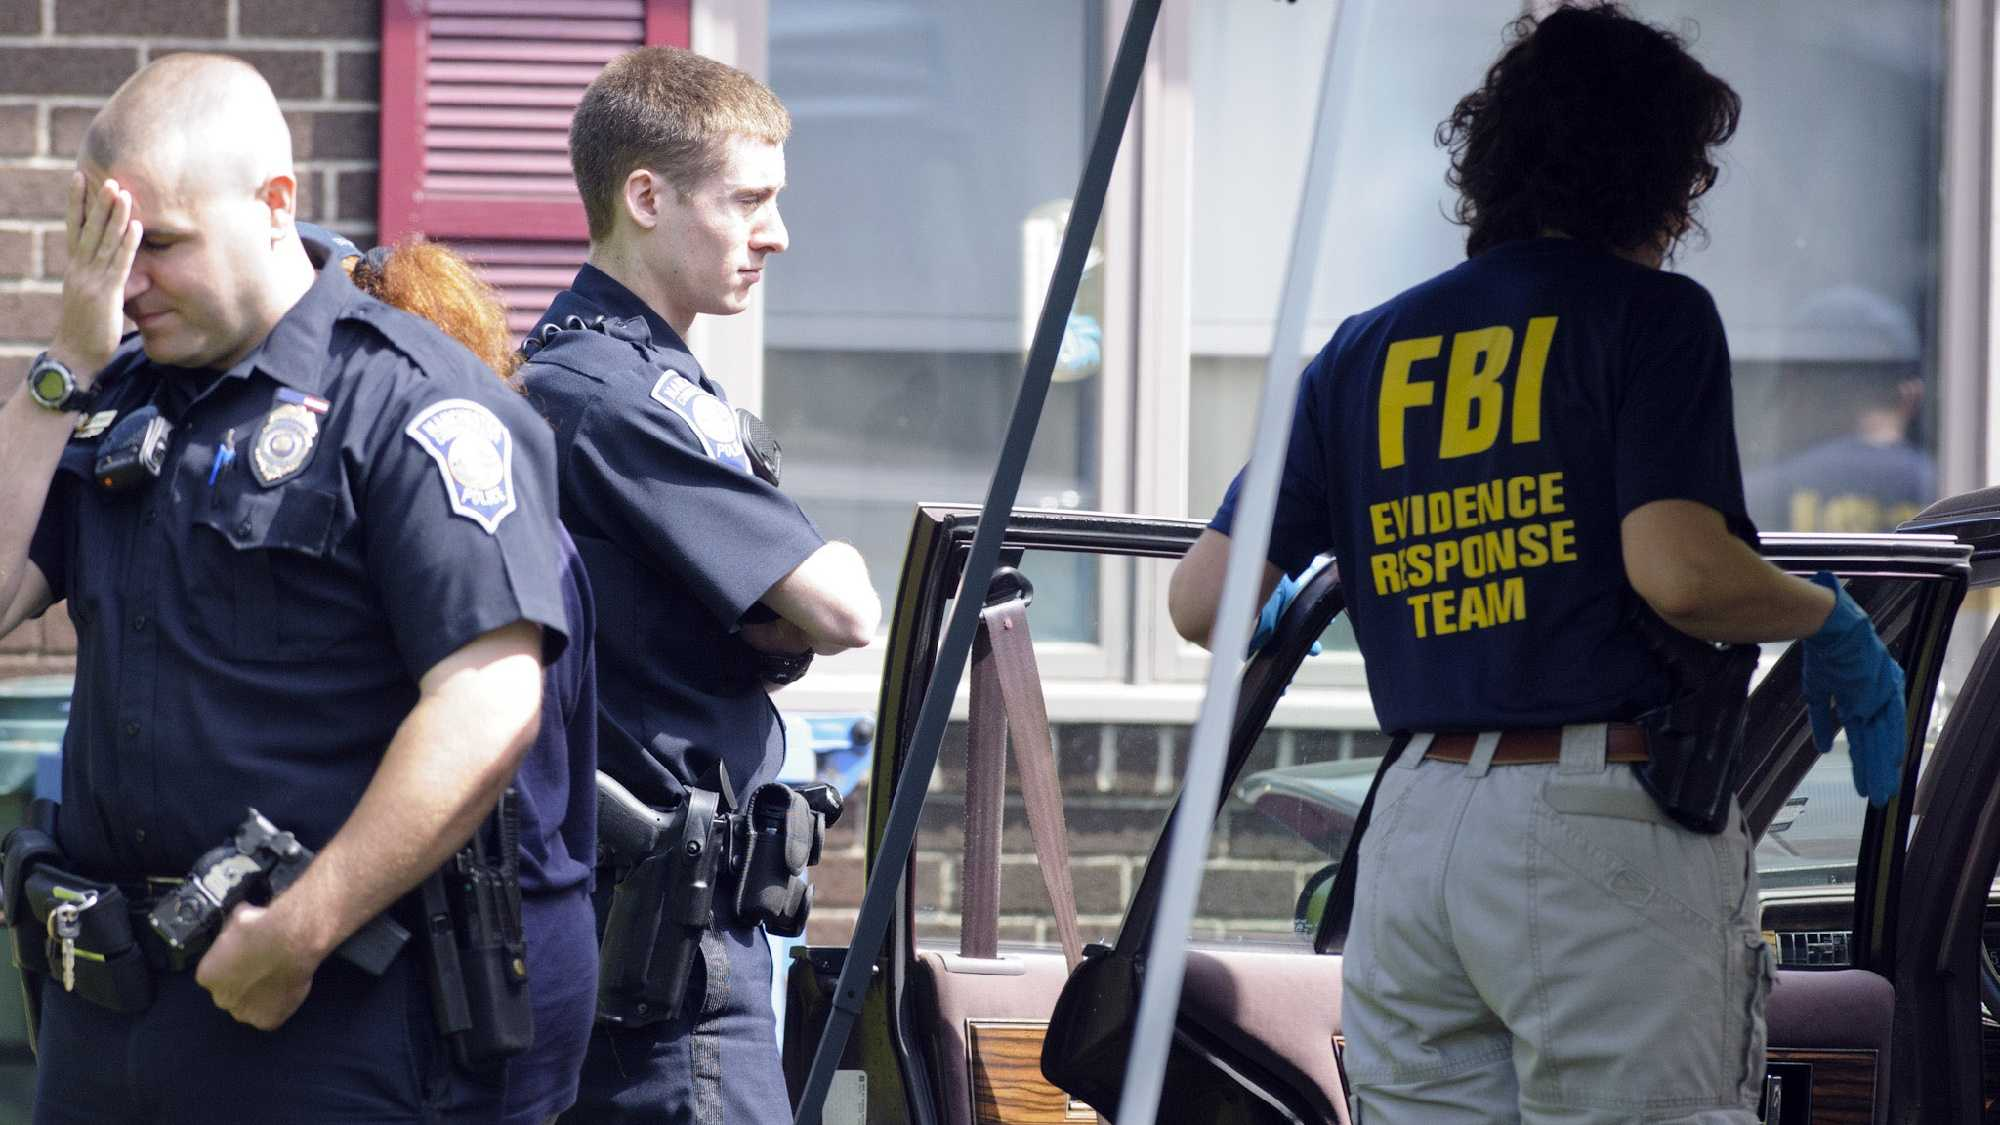 In 2012, FBI agents swarmed the home of reputed Connecticut mobster Robert Gentile looking for new evidence in the Gardner Museum heist.